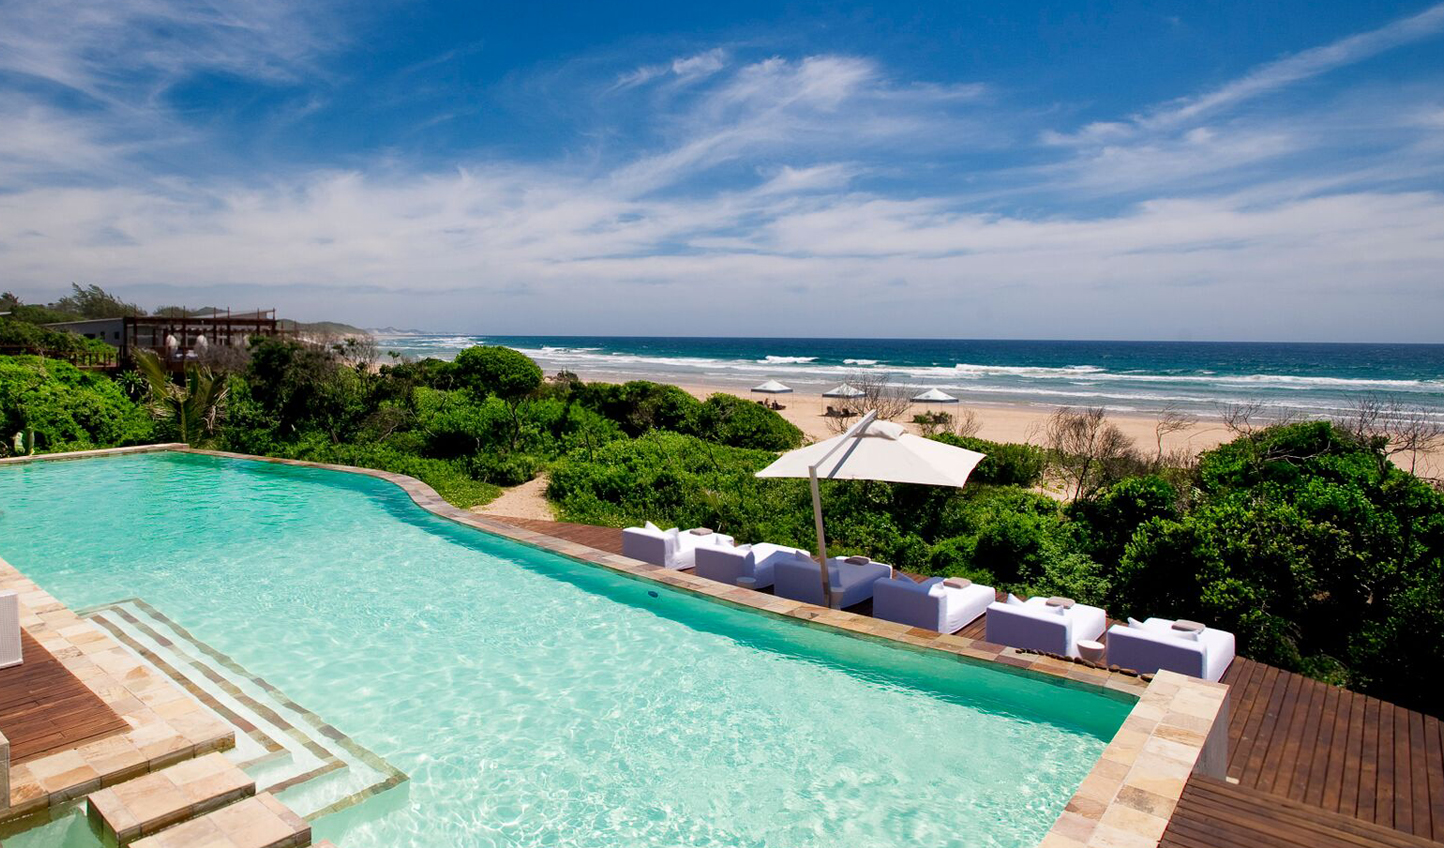 The main pool at White Pearl, overlooking the Indian Ocean